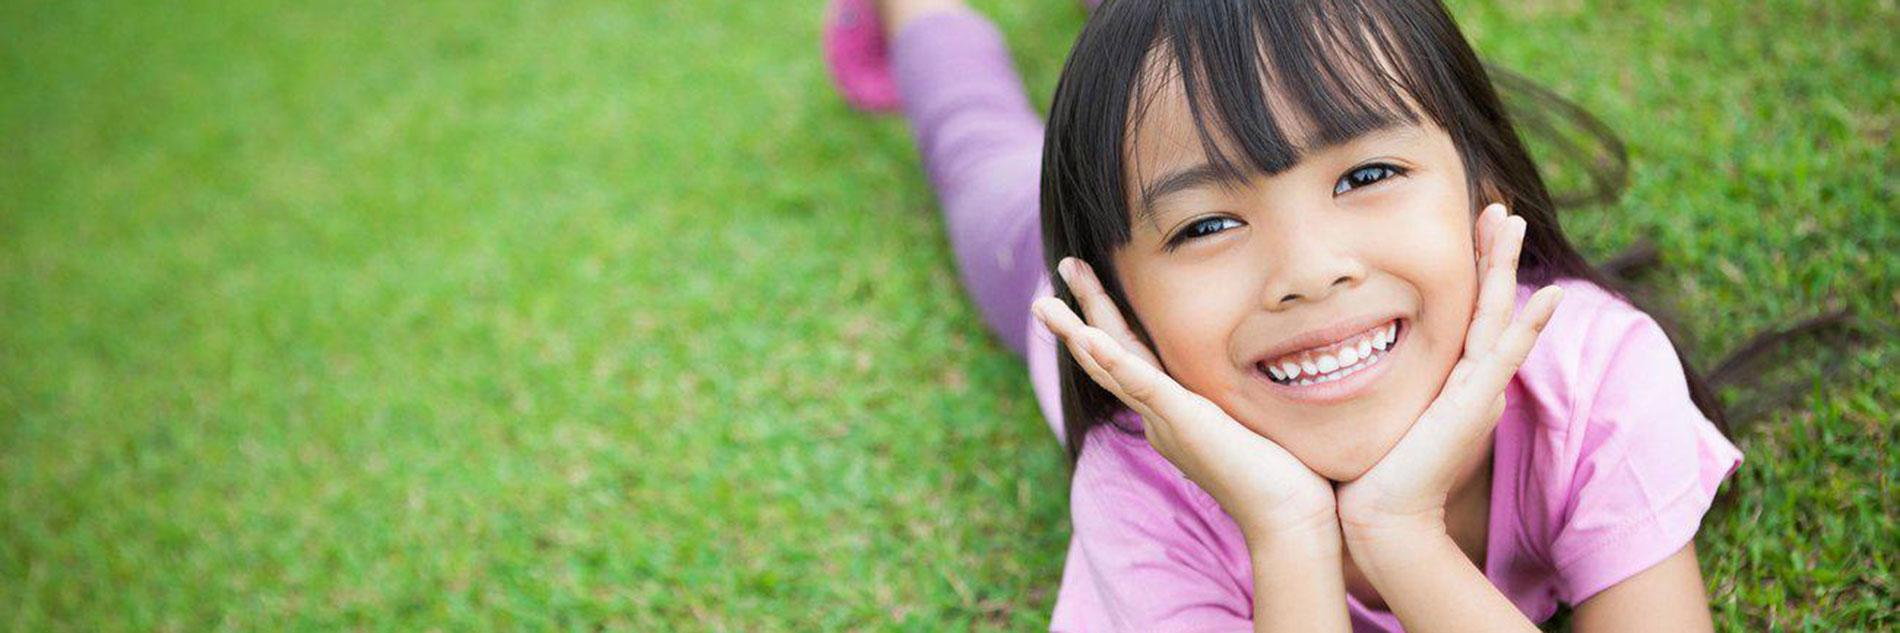 Pediatric Dental Procedures in Santa Monica banner image